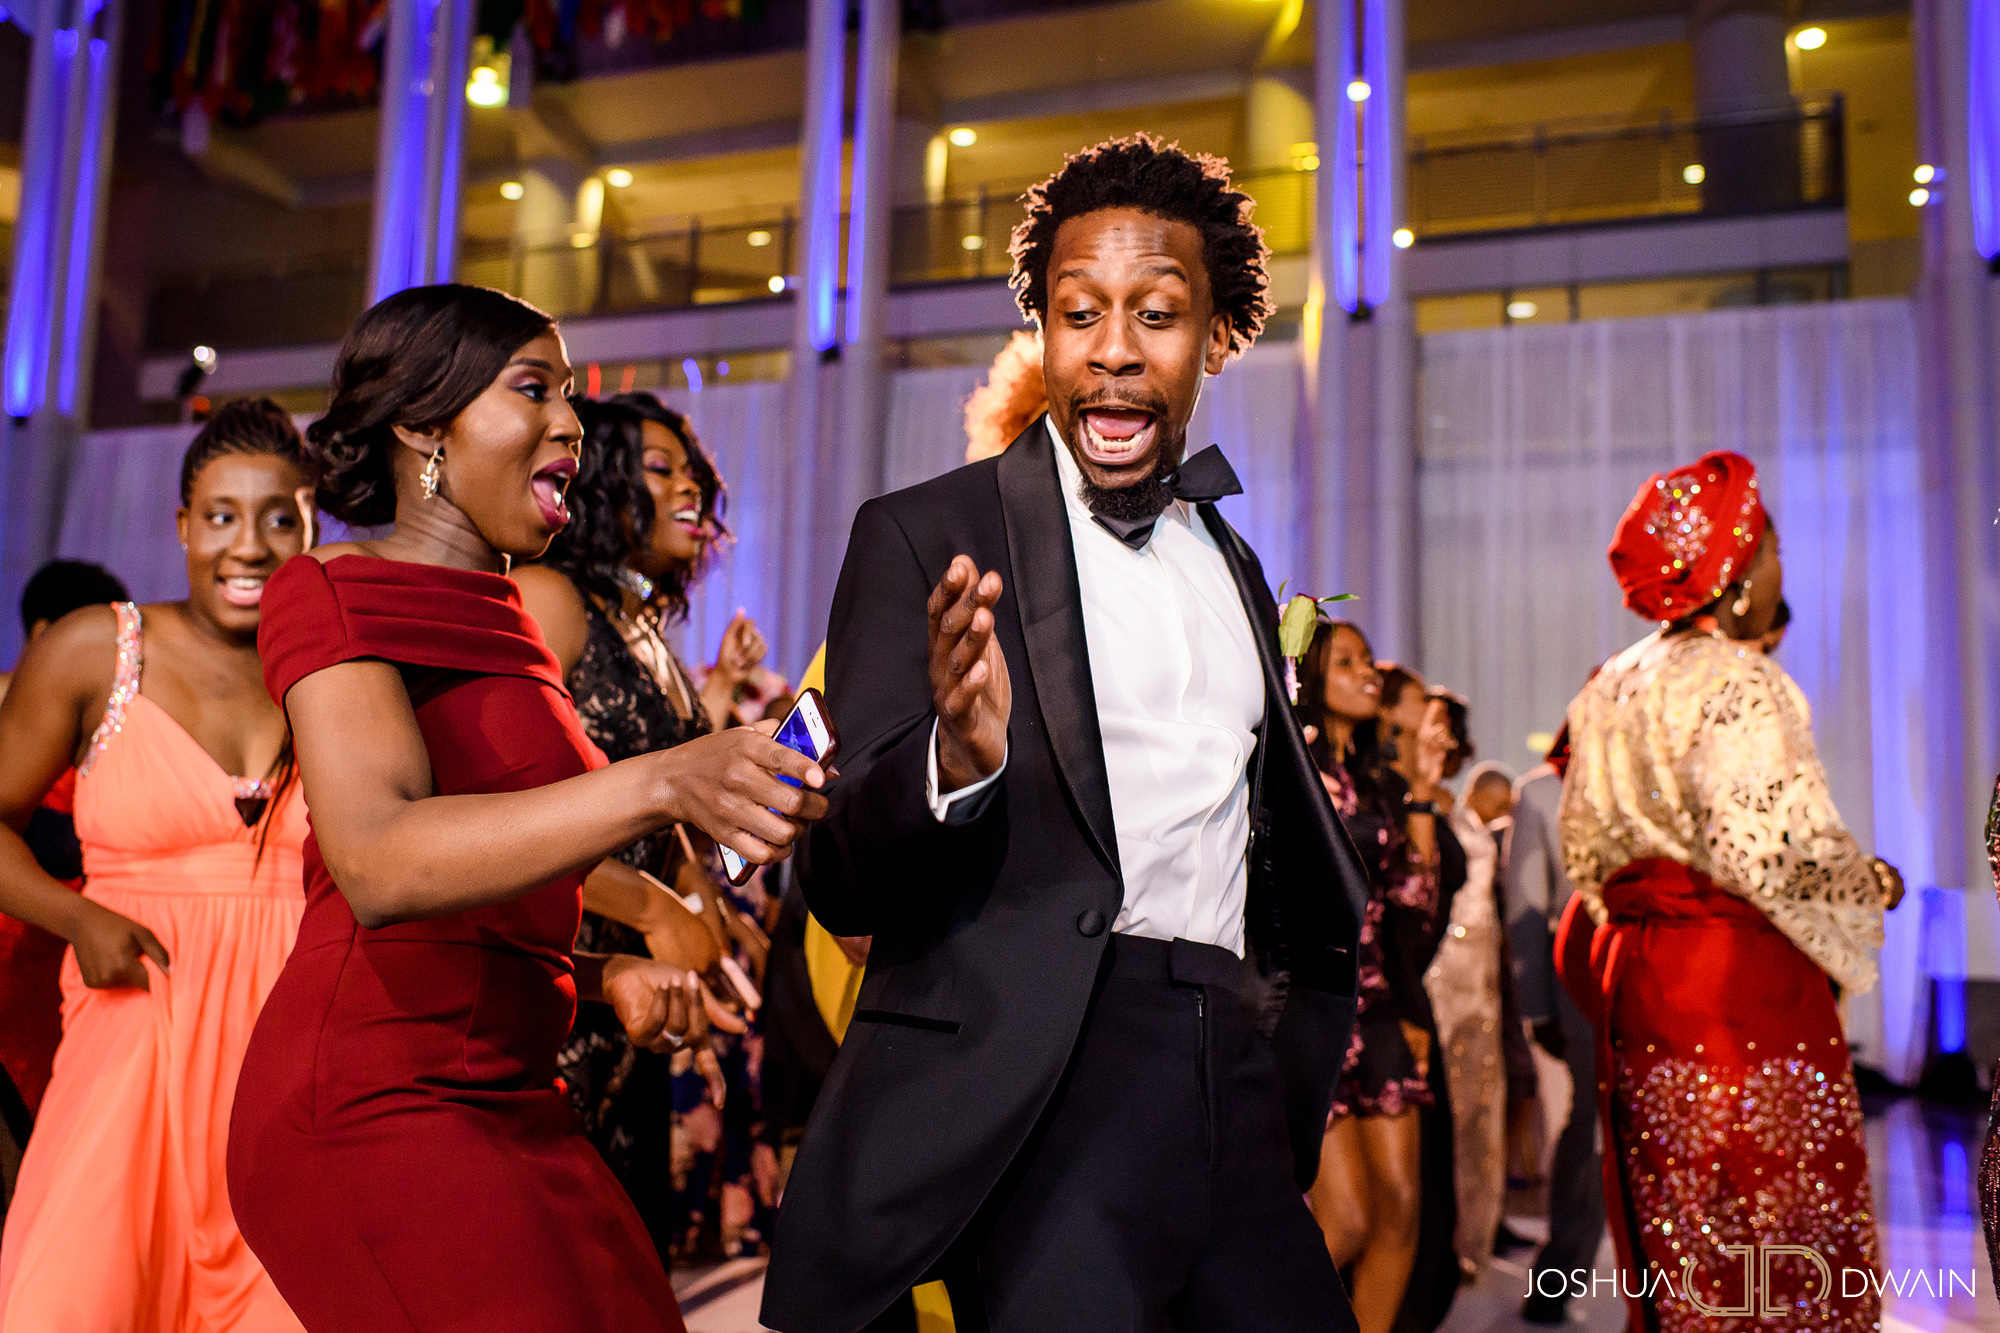 emerald-tolu--049-ronald-reagan-building-trade-center-best-washington-dc--wedding-photographer-joshua-dwain